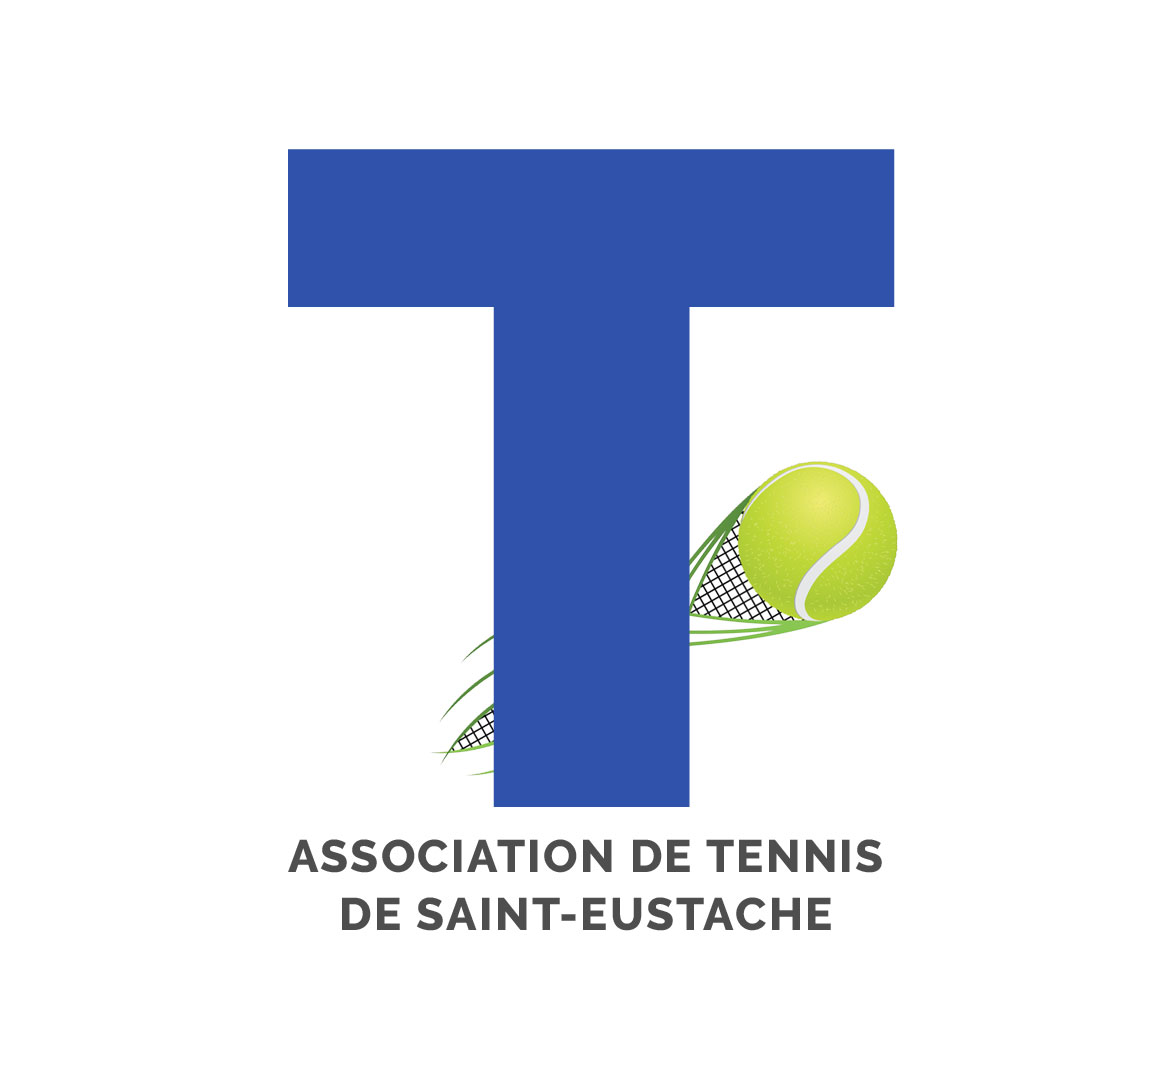 Association de tennis de Saint-Eustache